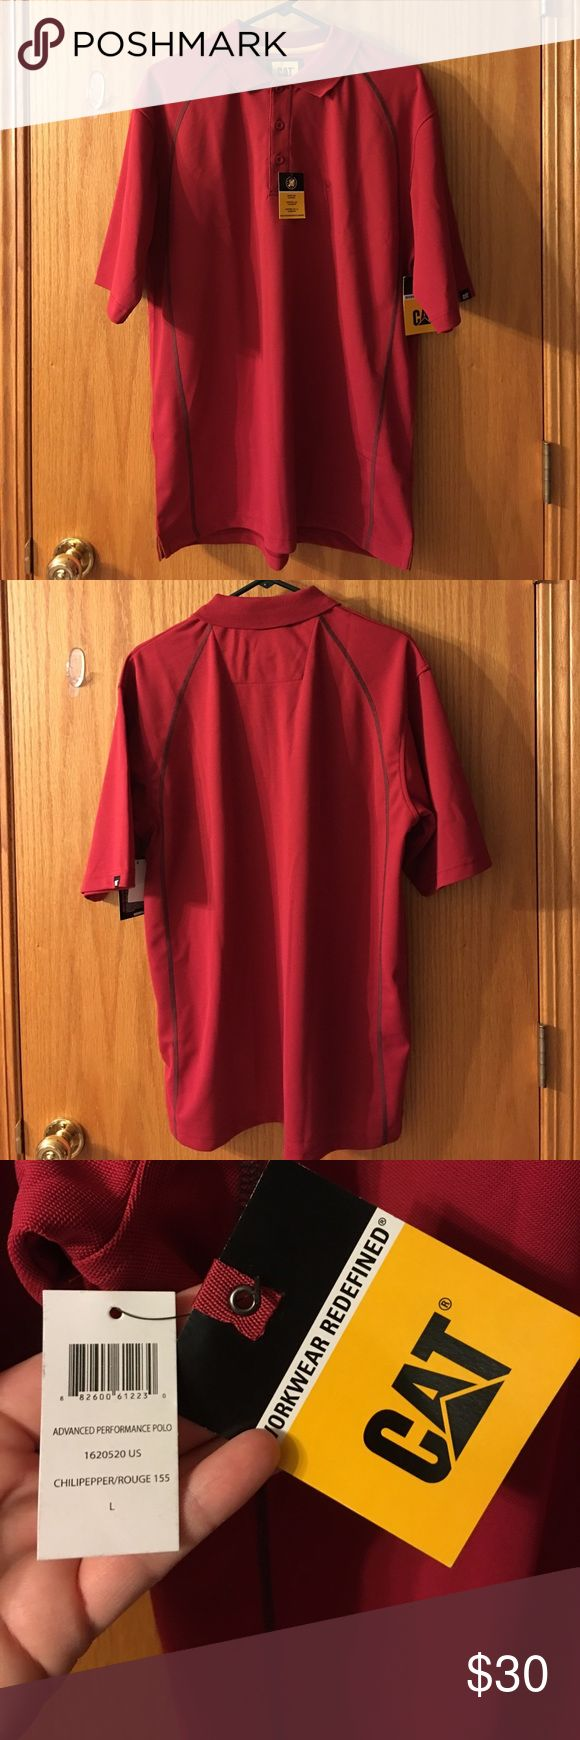 CAT men's performance polo shirt Men's red polo shirt by Caterpillar workwear. Advanced performance polo has moisture wicking fabric. Great for everyday casual wear not for work. CAT emblem on right sleeve. Mens size Large. 100% polyester. NWT Caterpillar Shirts Polos